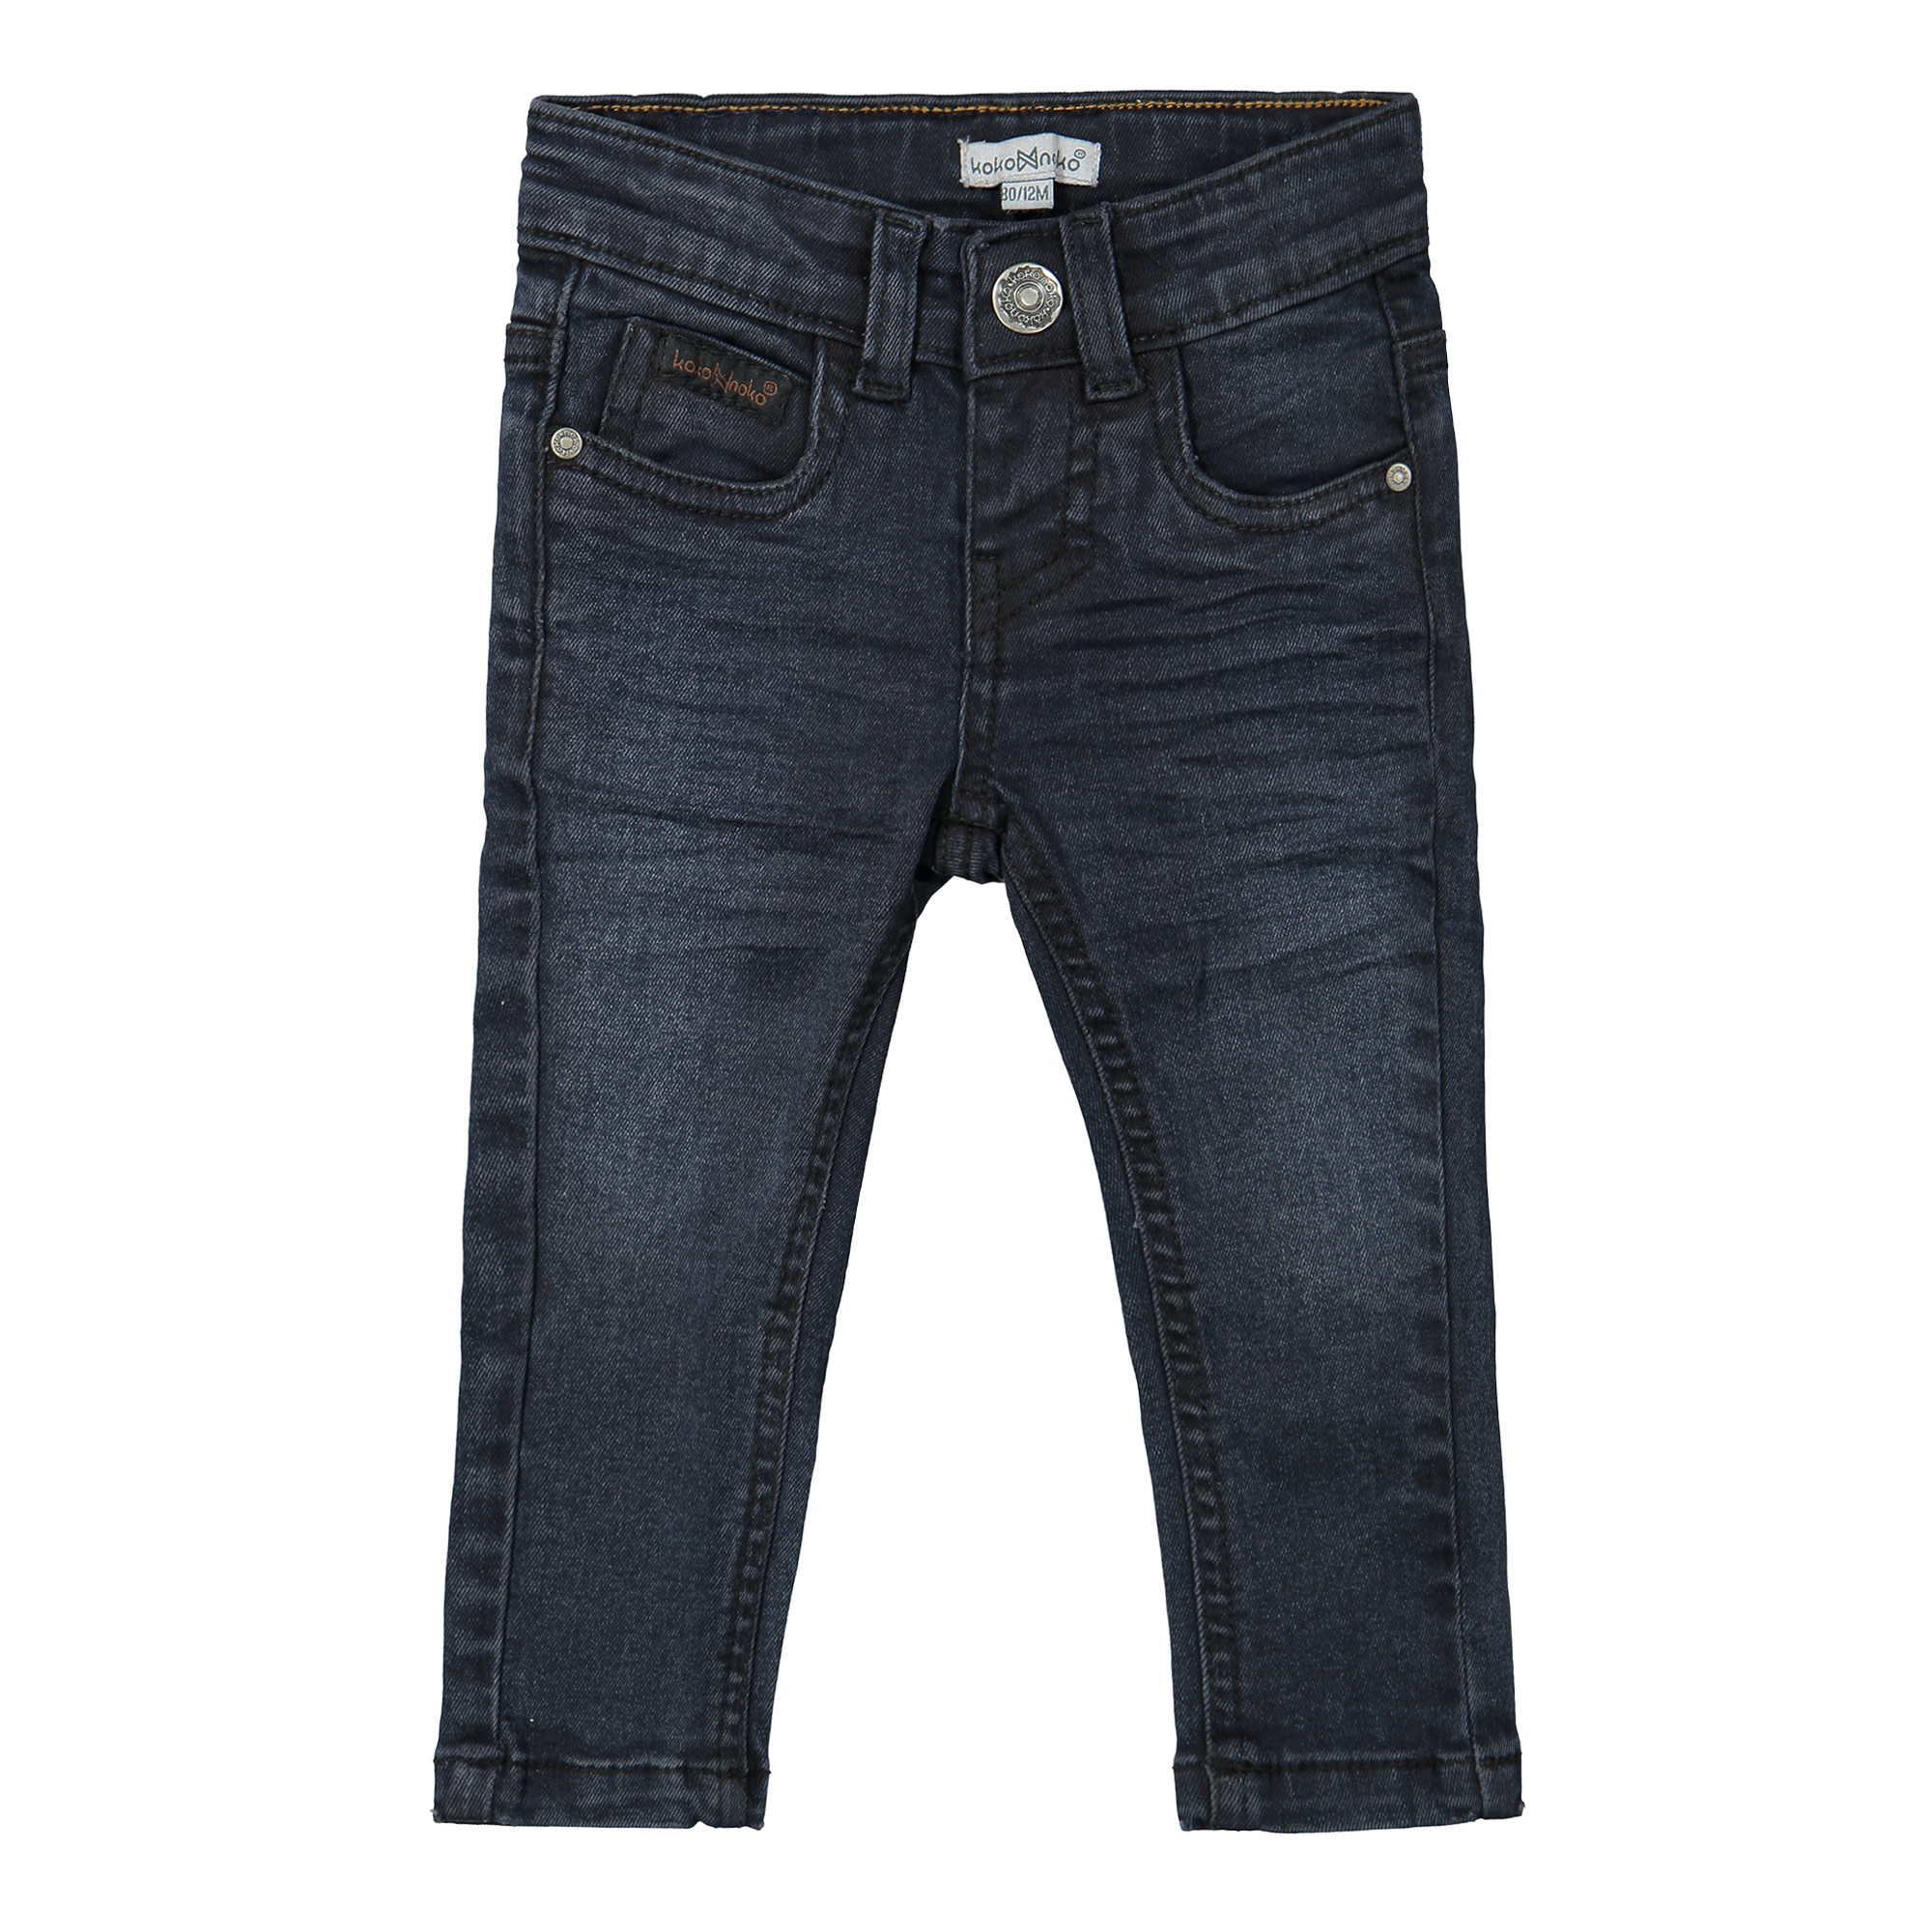 Boys Dark Wash Jeans with Leather Placket